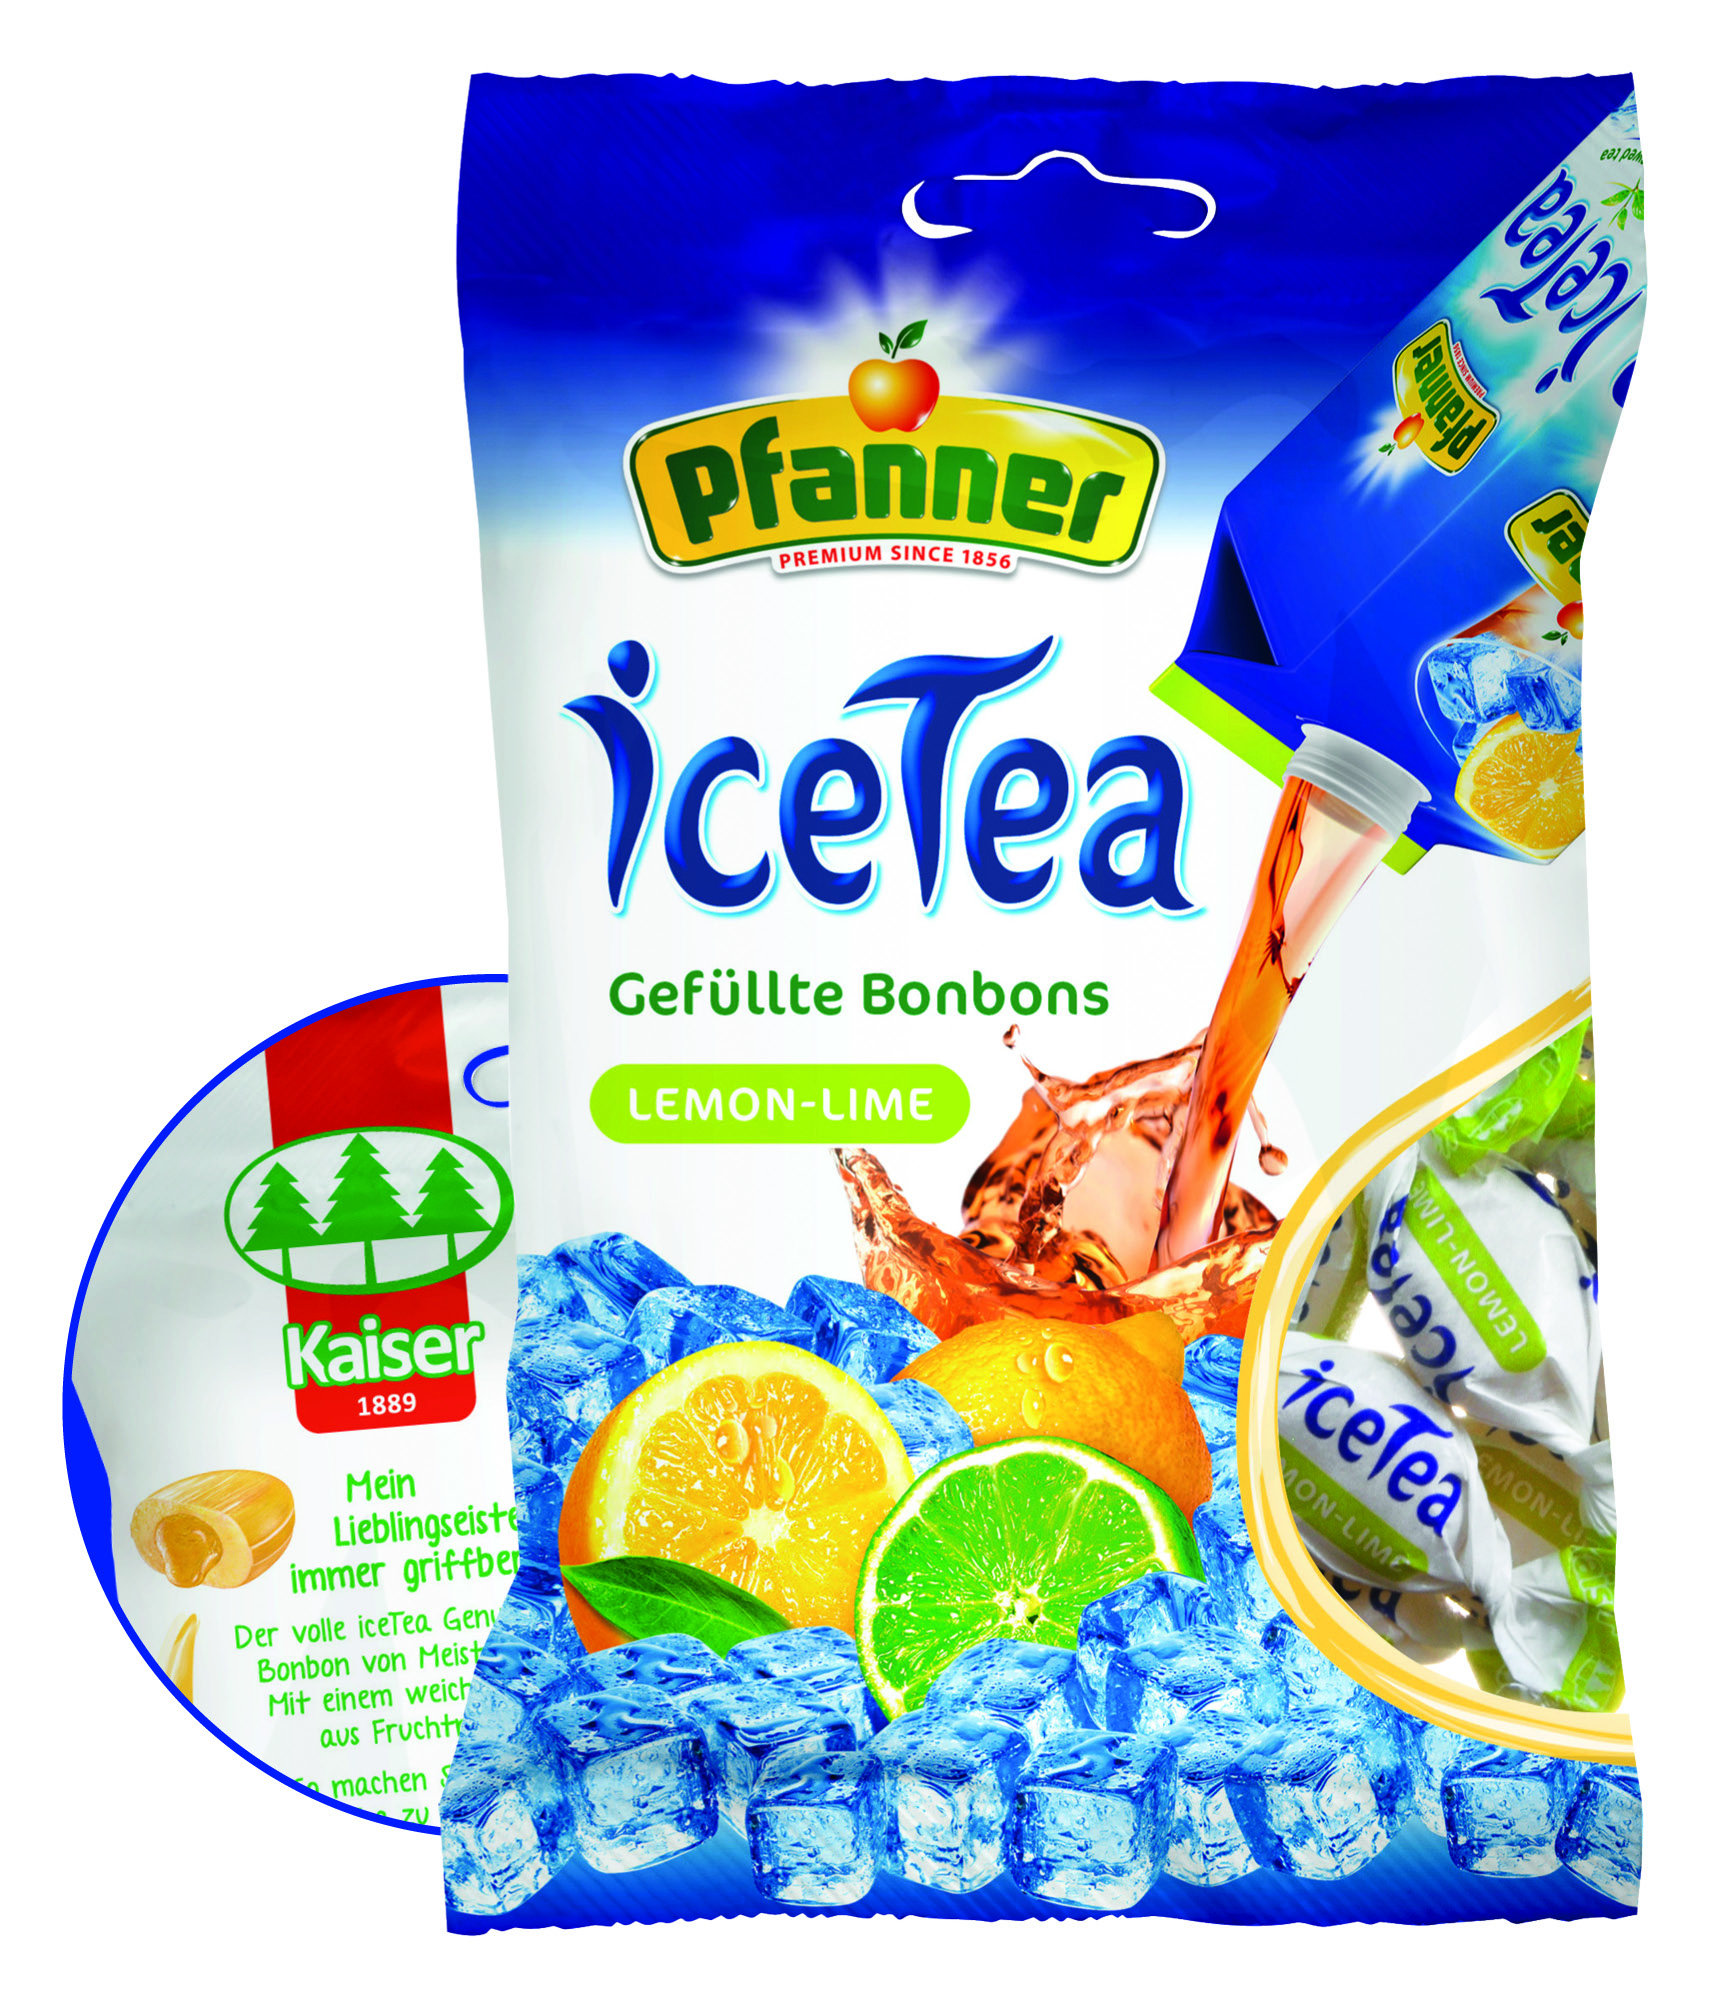 Kaiser iceTea Lemon-Lime